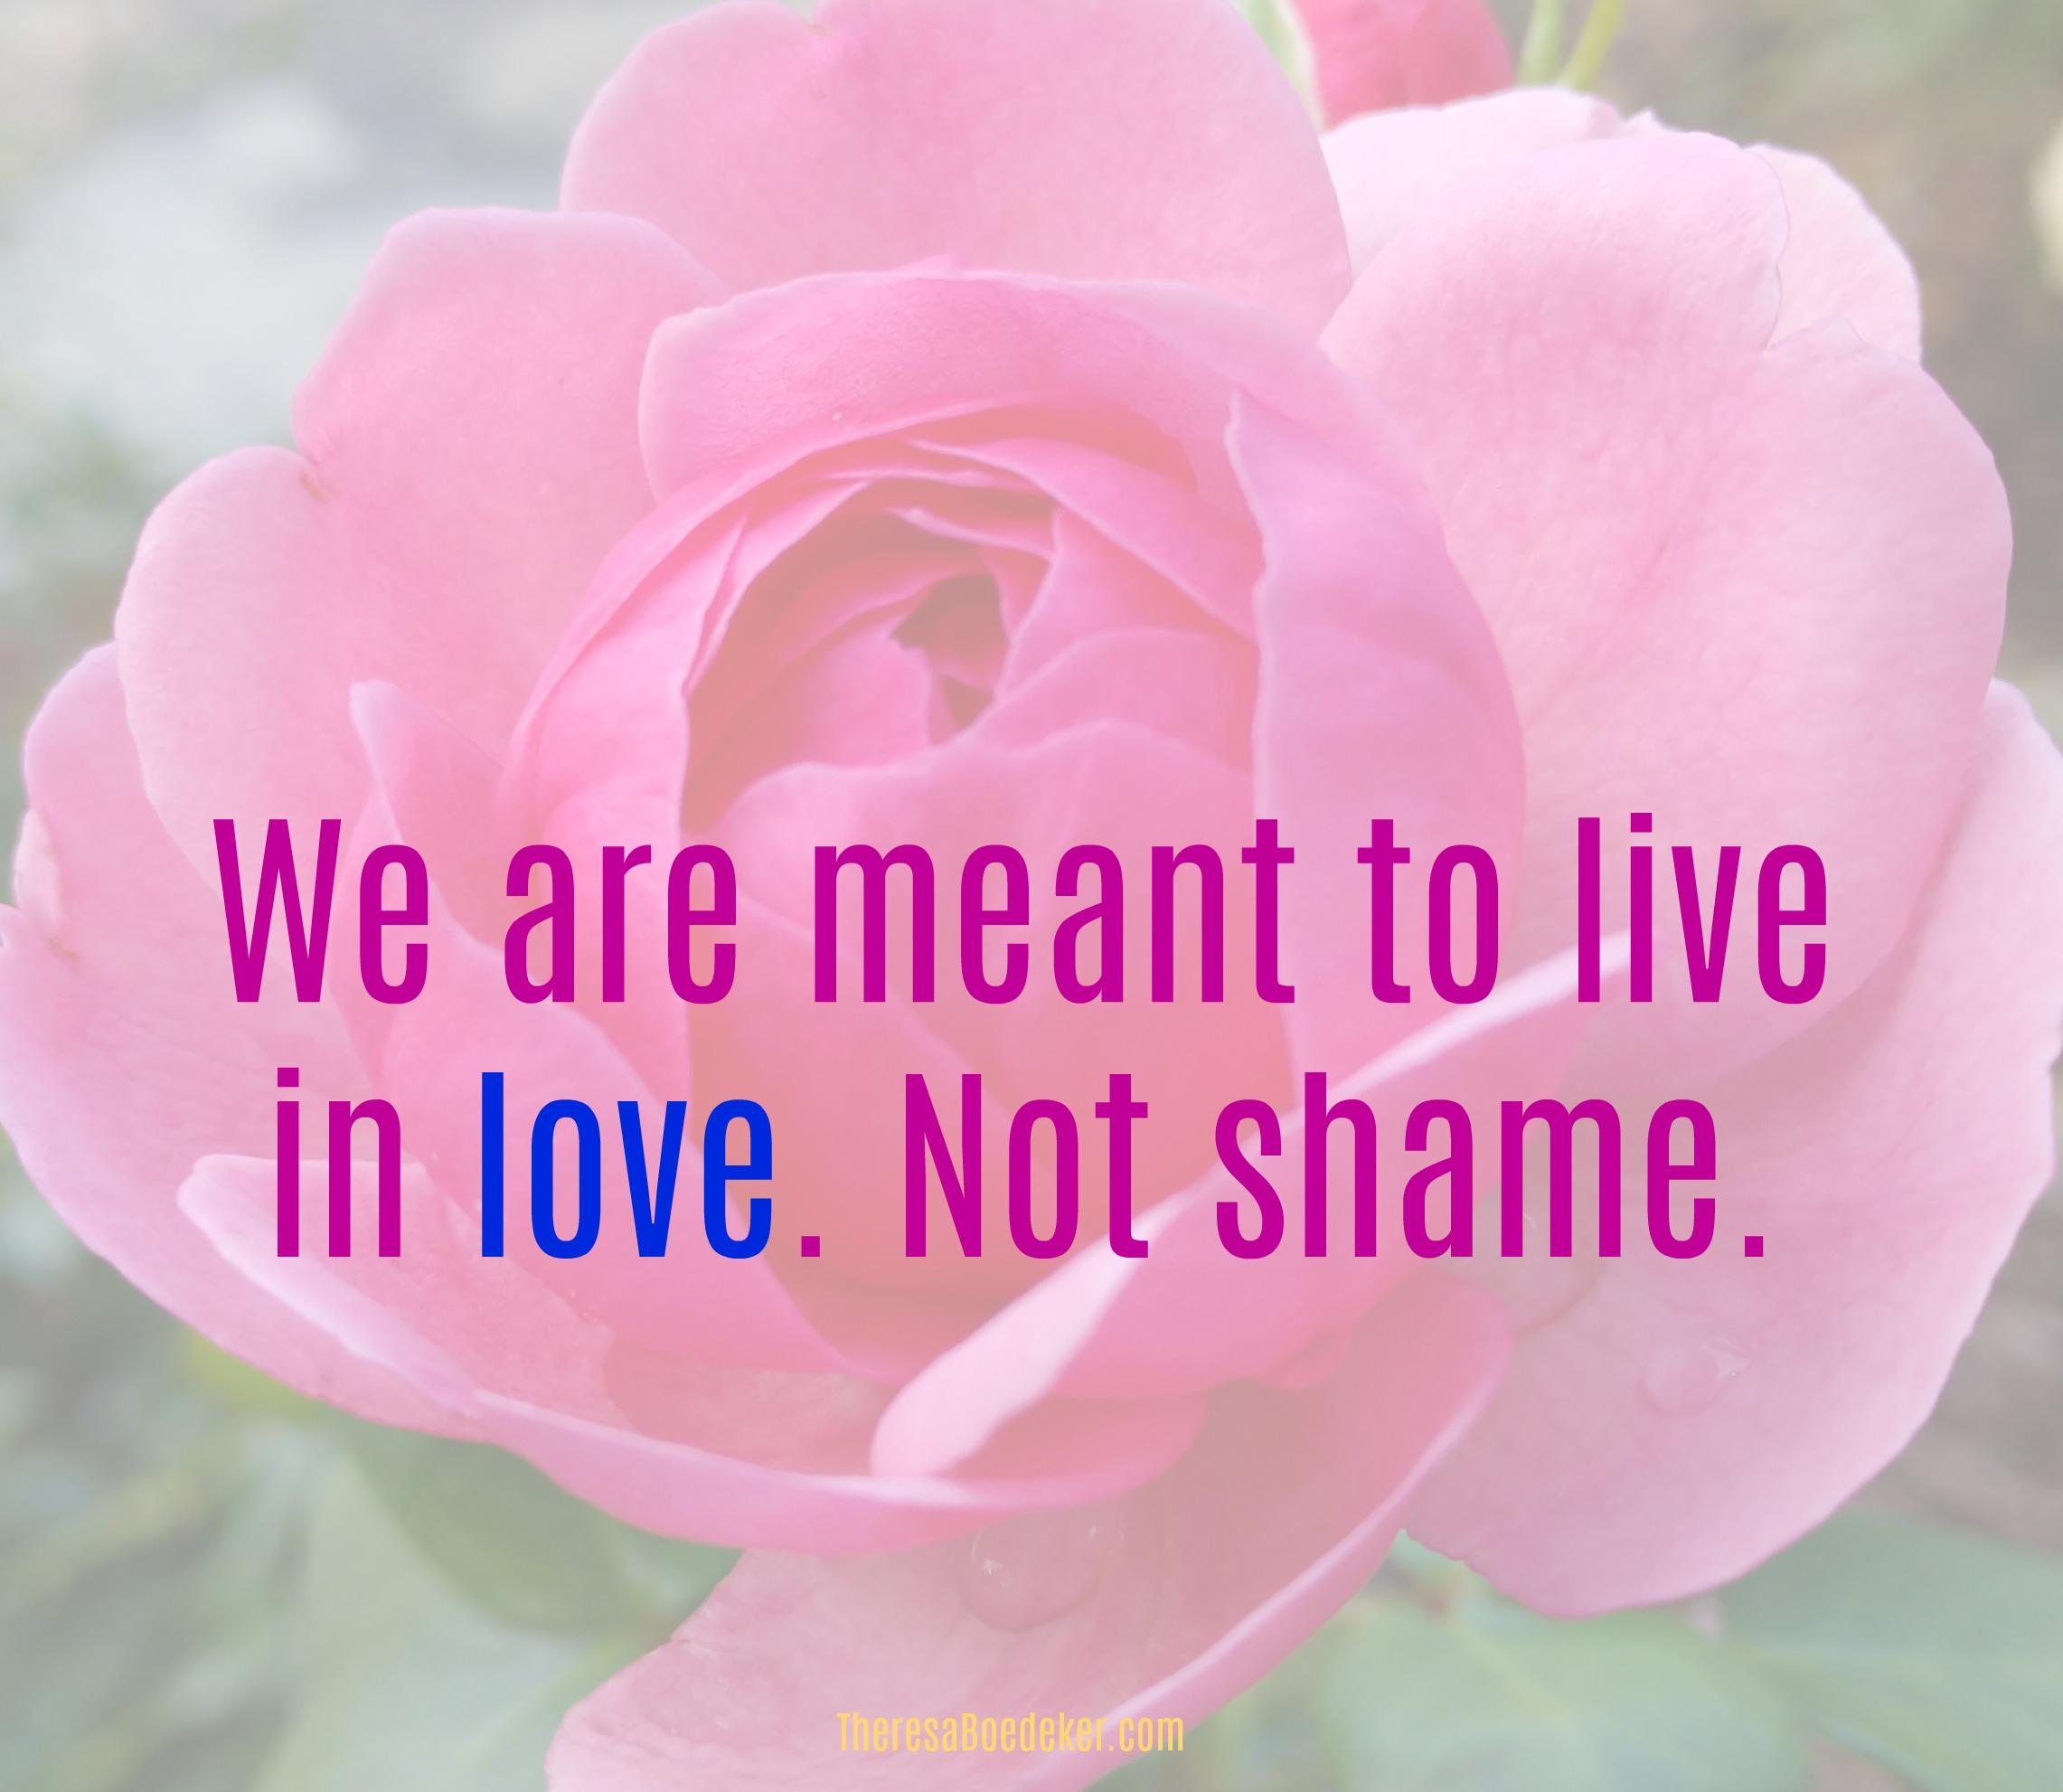 Shattering your feelings of unworthiness. Because you are not meant to live in shame.